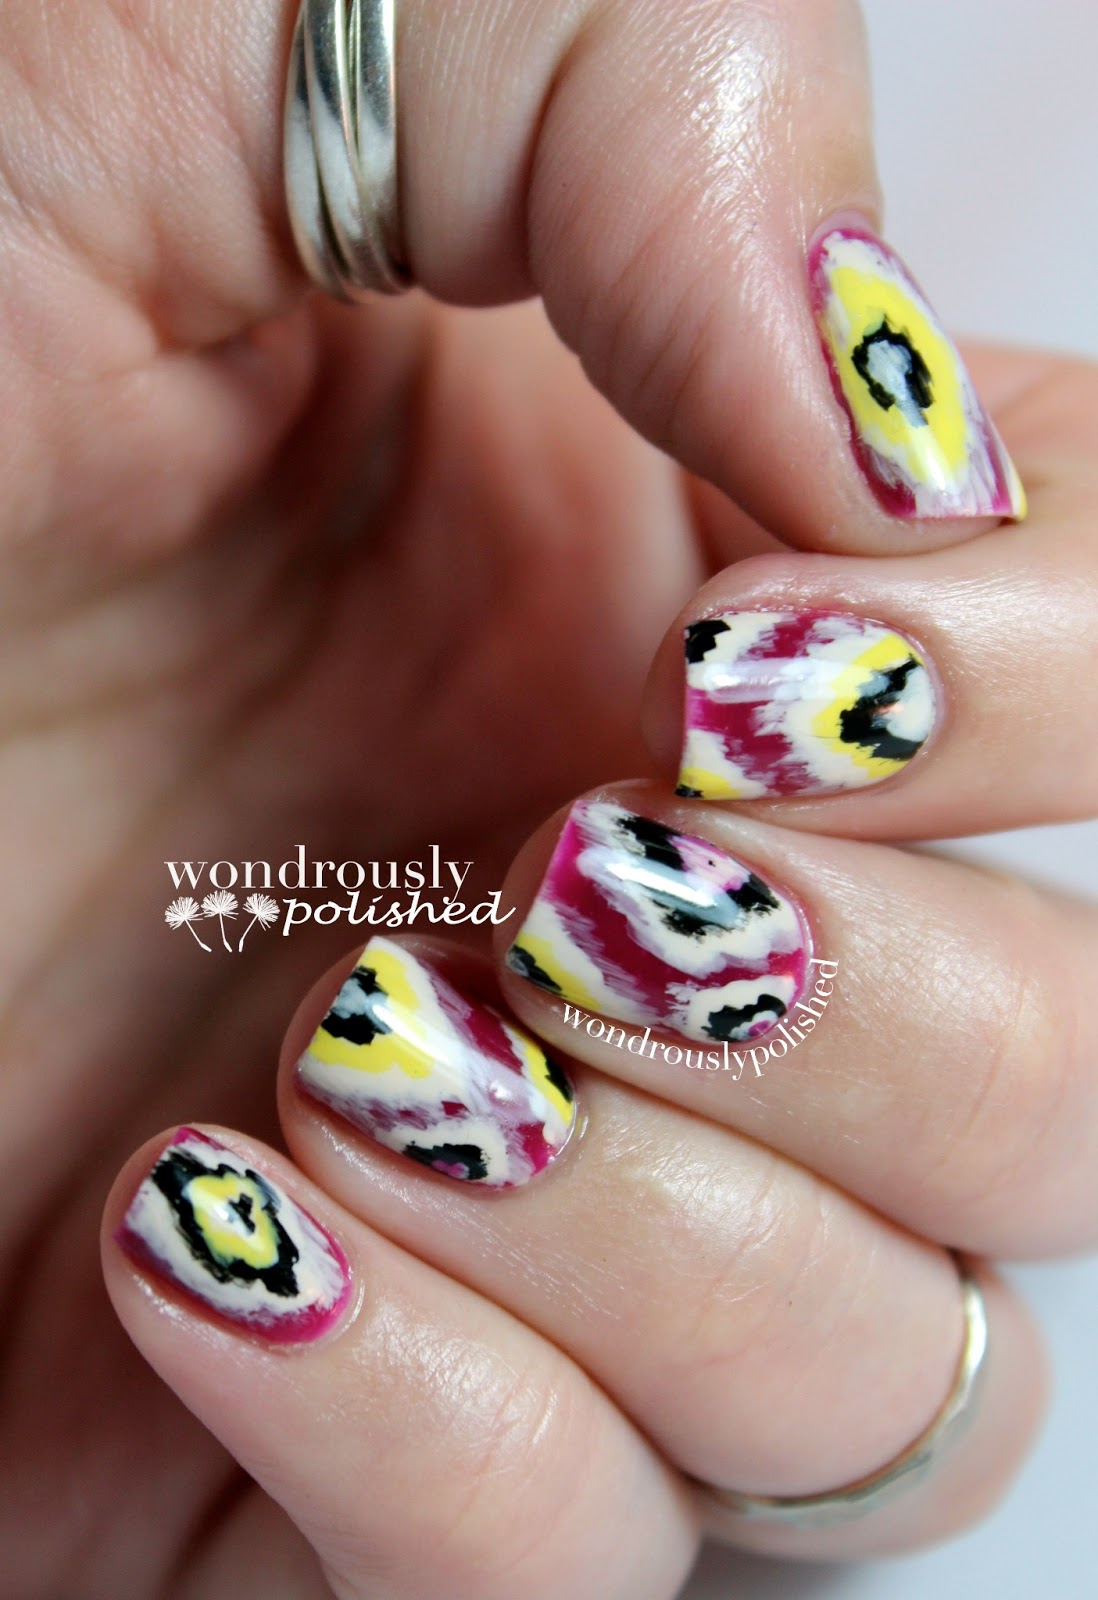 Wondrously Polished February Nail Art Challenge: Wondrously Polished: Seven Deadly Sins